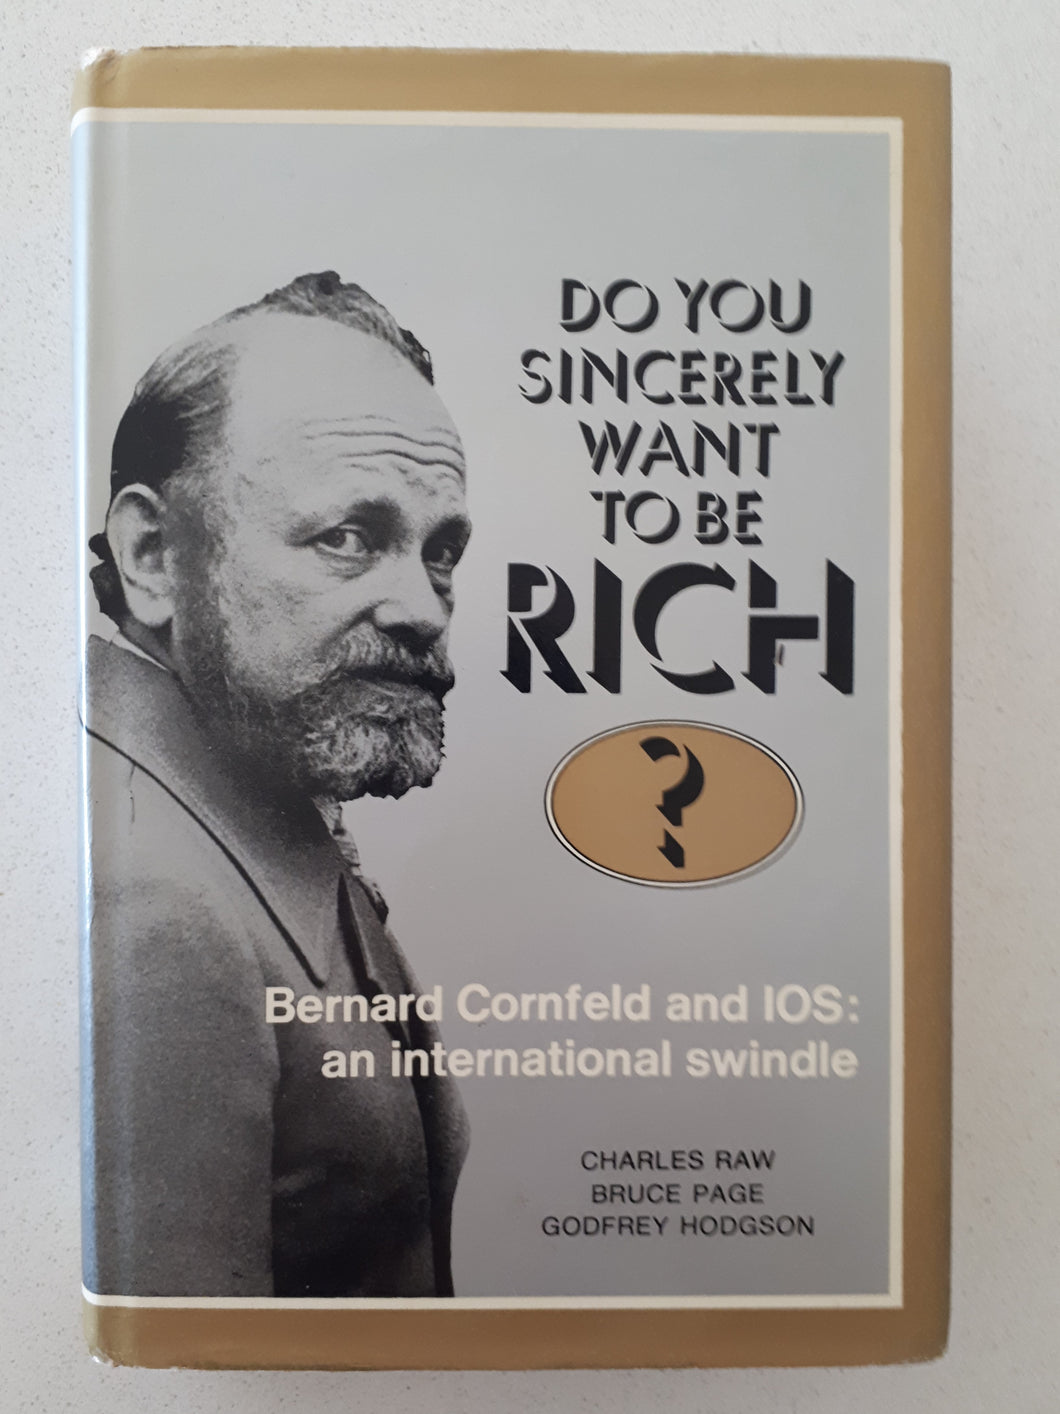 Do You Sincerely Want To Be Rich?  Bernard Cornfield and IOS: an international swindle  by Charles Raw, Godfrey Hodgson & Bruce Page